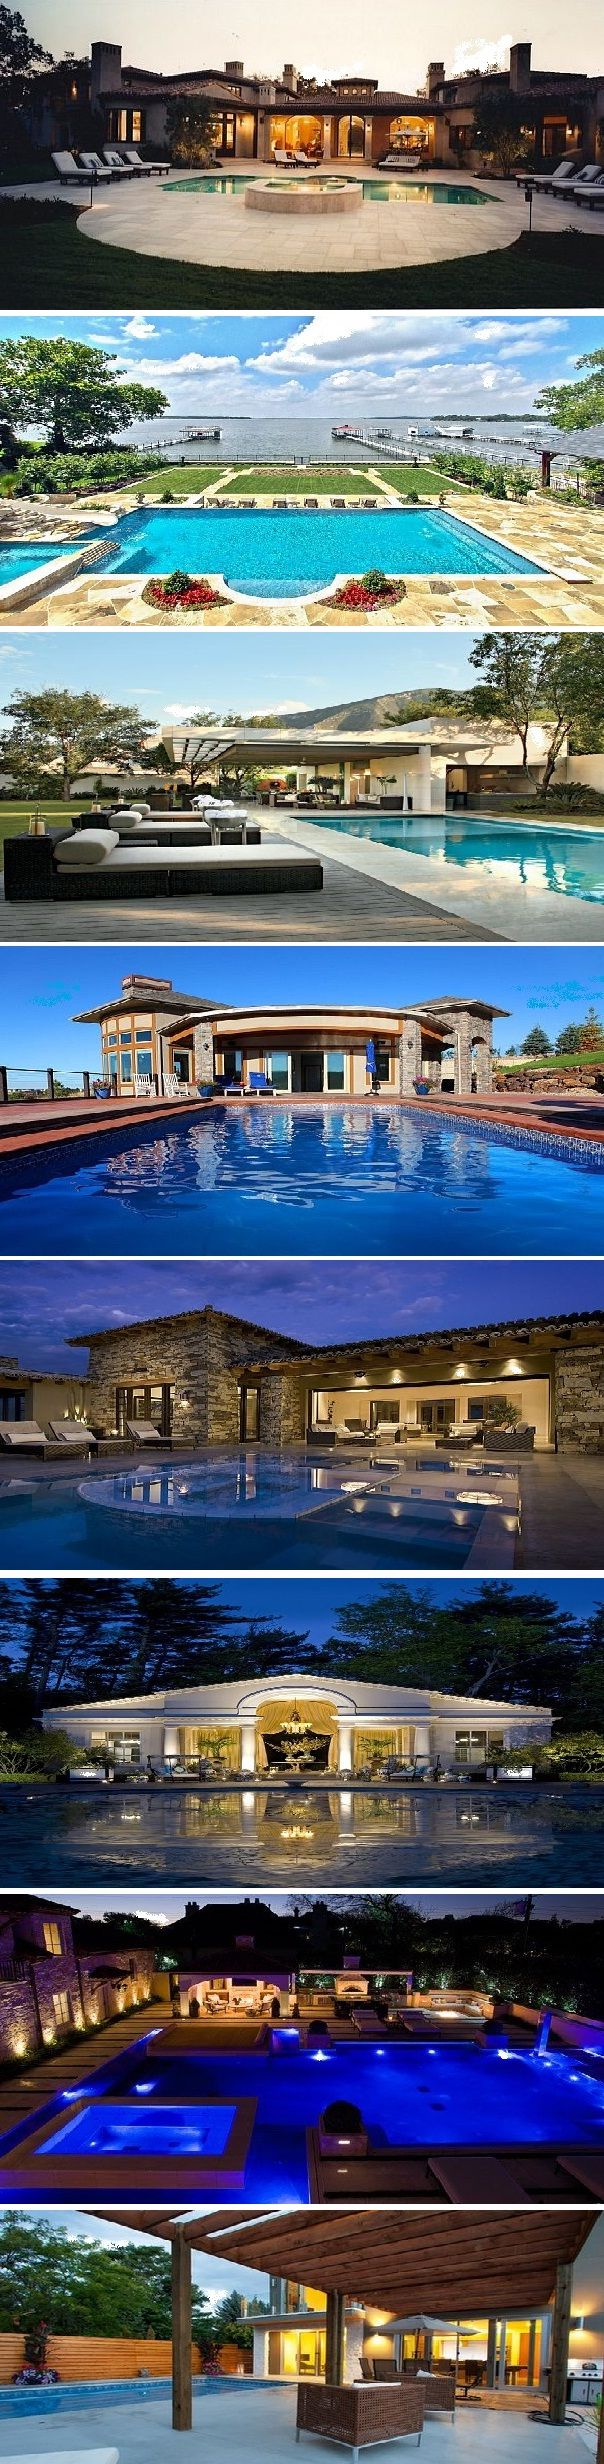 Swimming Pool Design Ideas for Your House